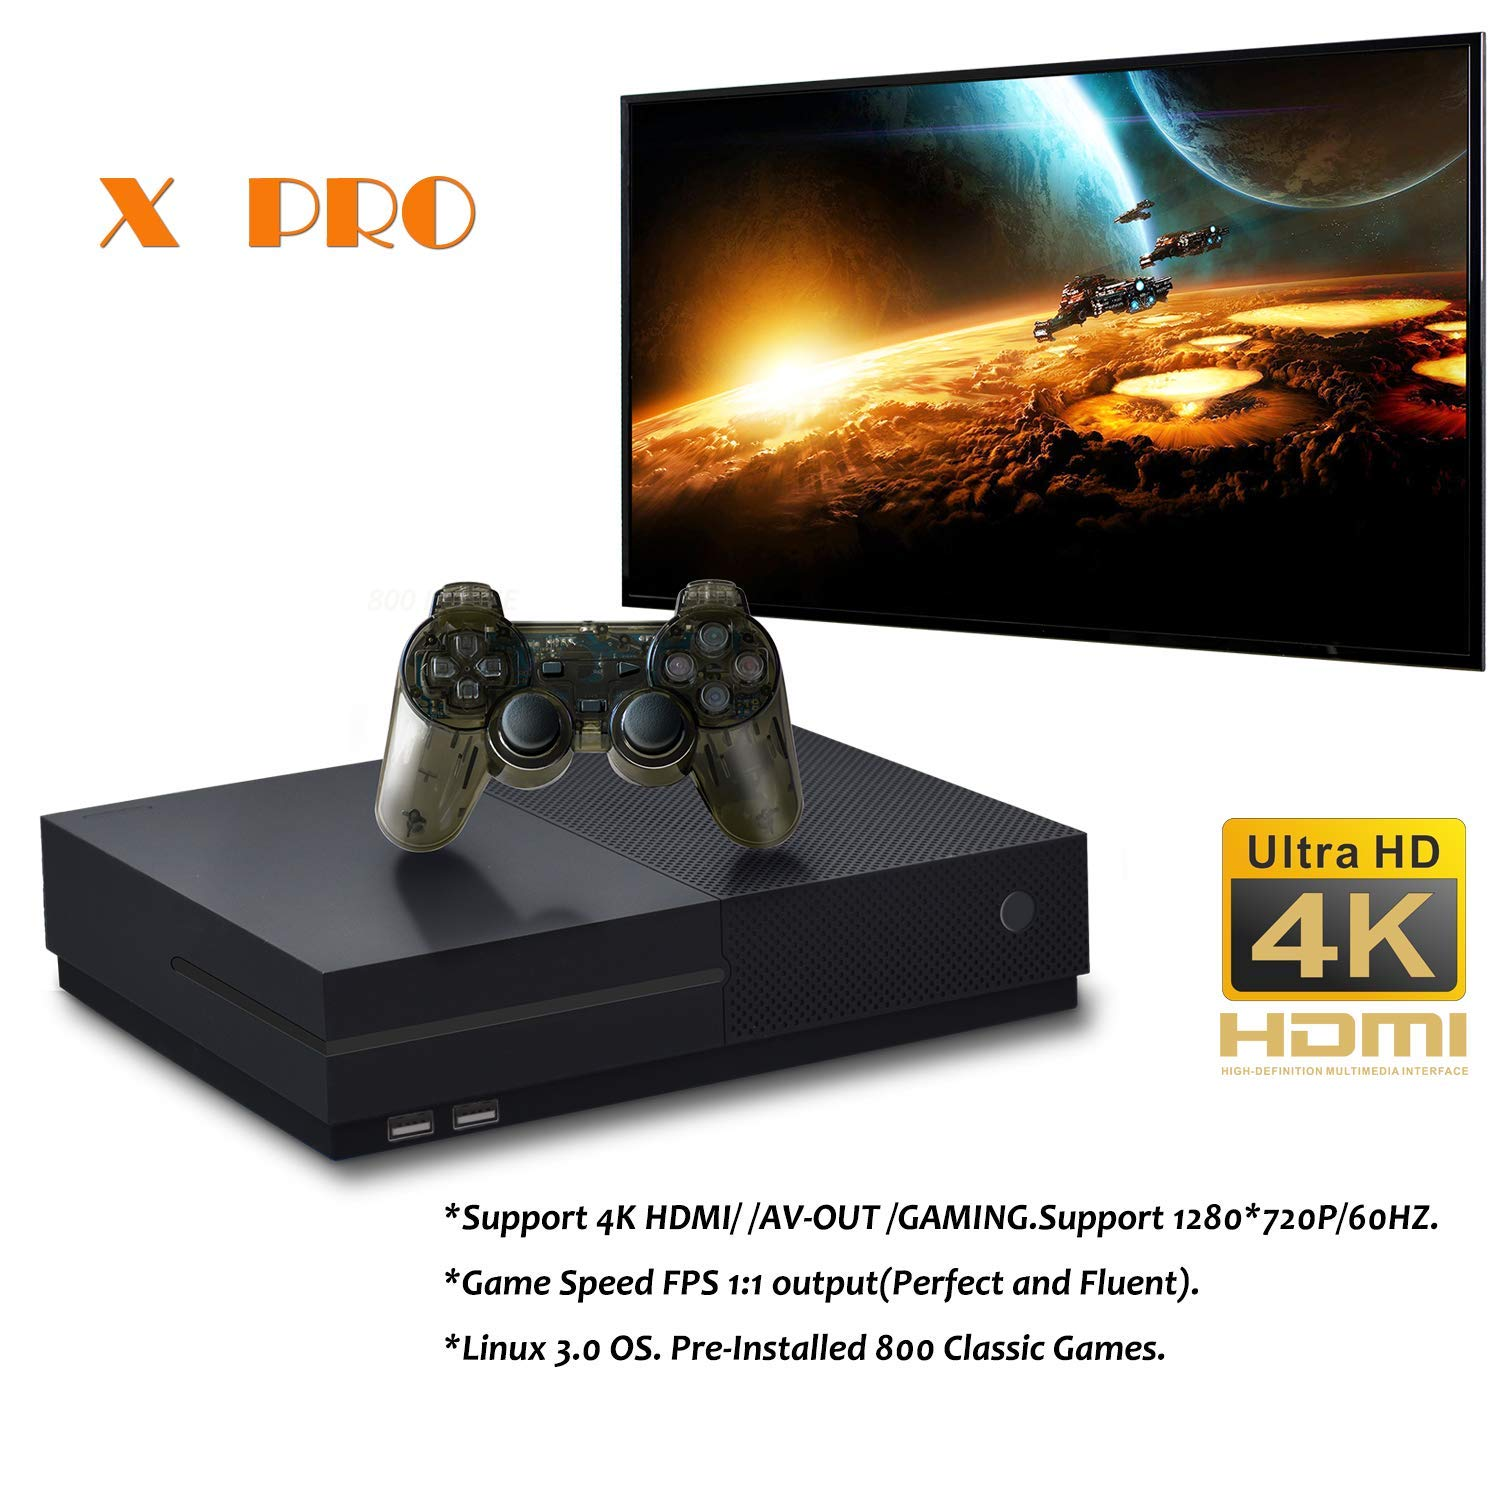 BAORUITENG Retro Game Console, HD Video Game Console 843 Classic Games 4K HDMI TV Output with 2PCS Joystick for a Great Gifi for Game Player (Black) by BAORUITENG (Image #2)